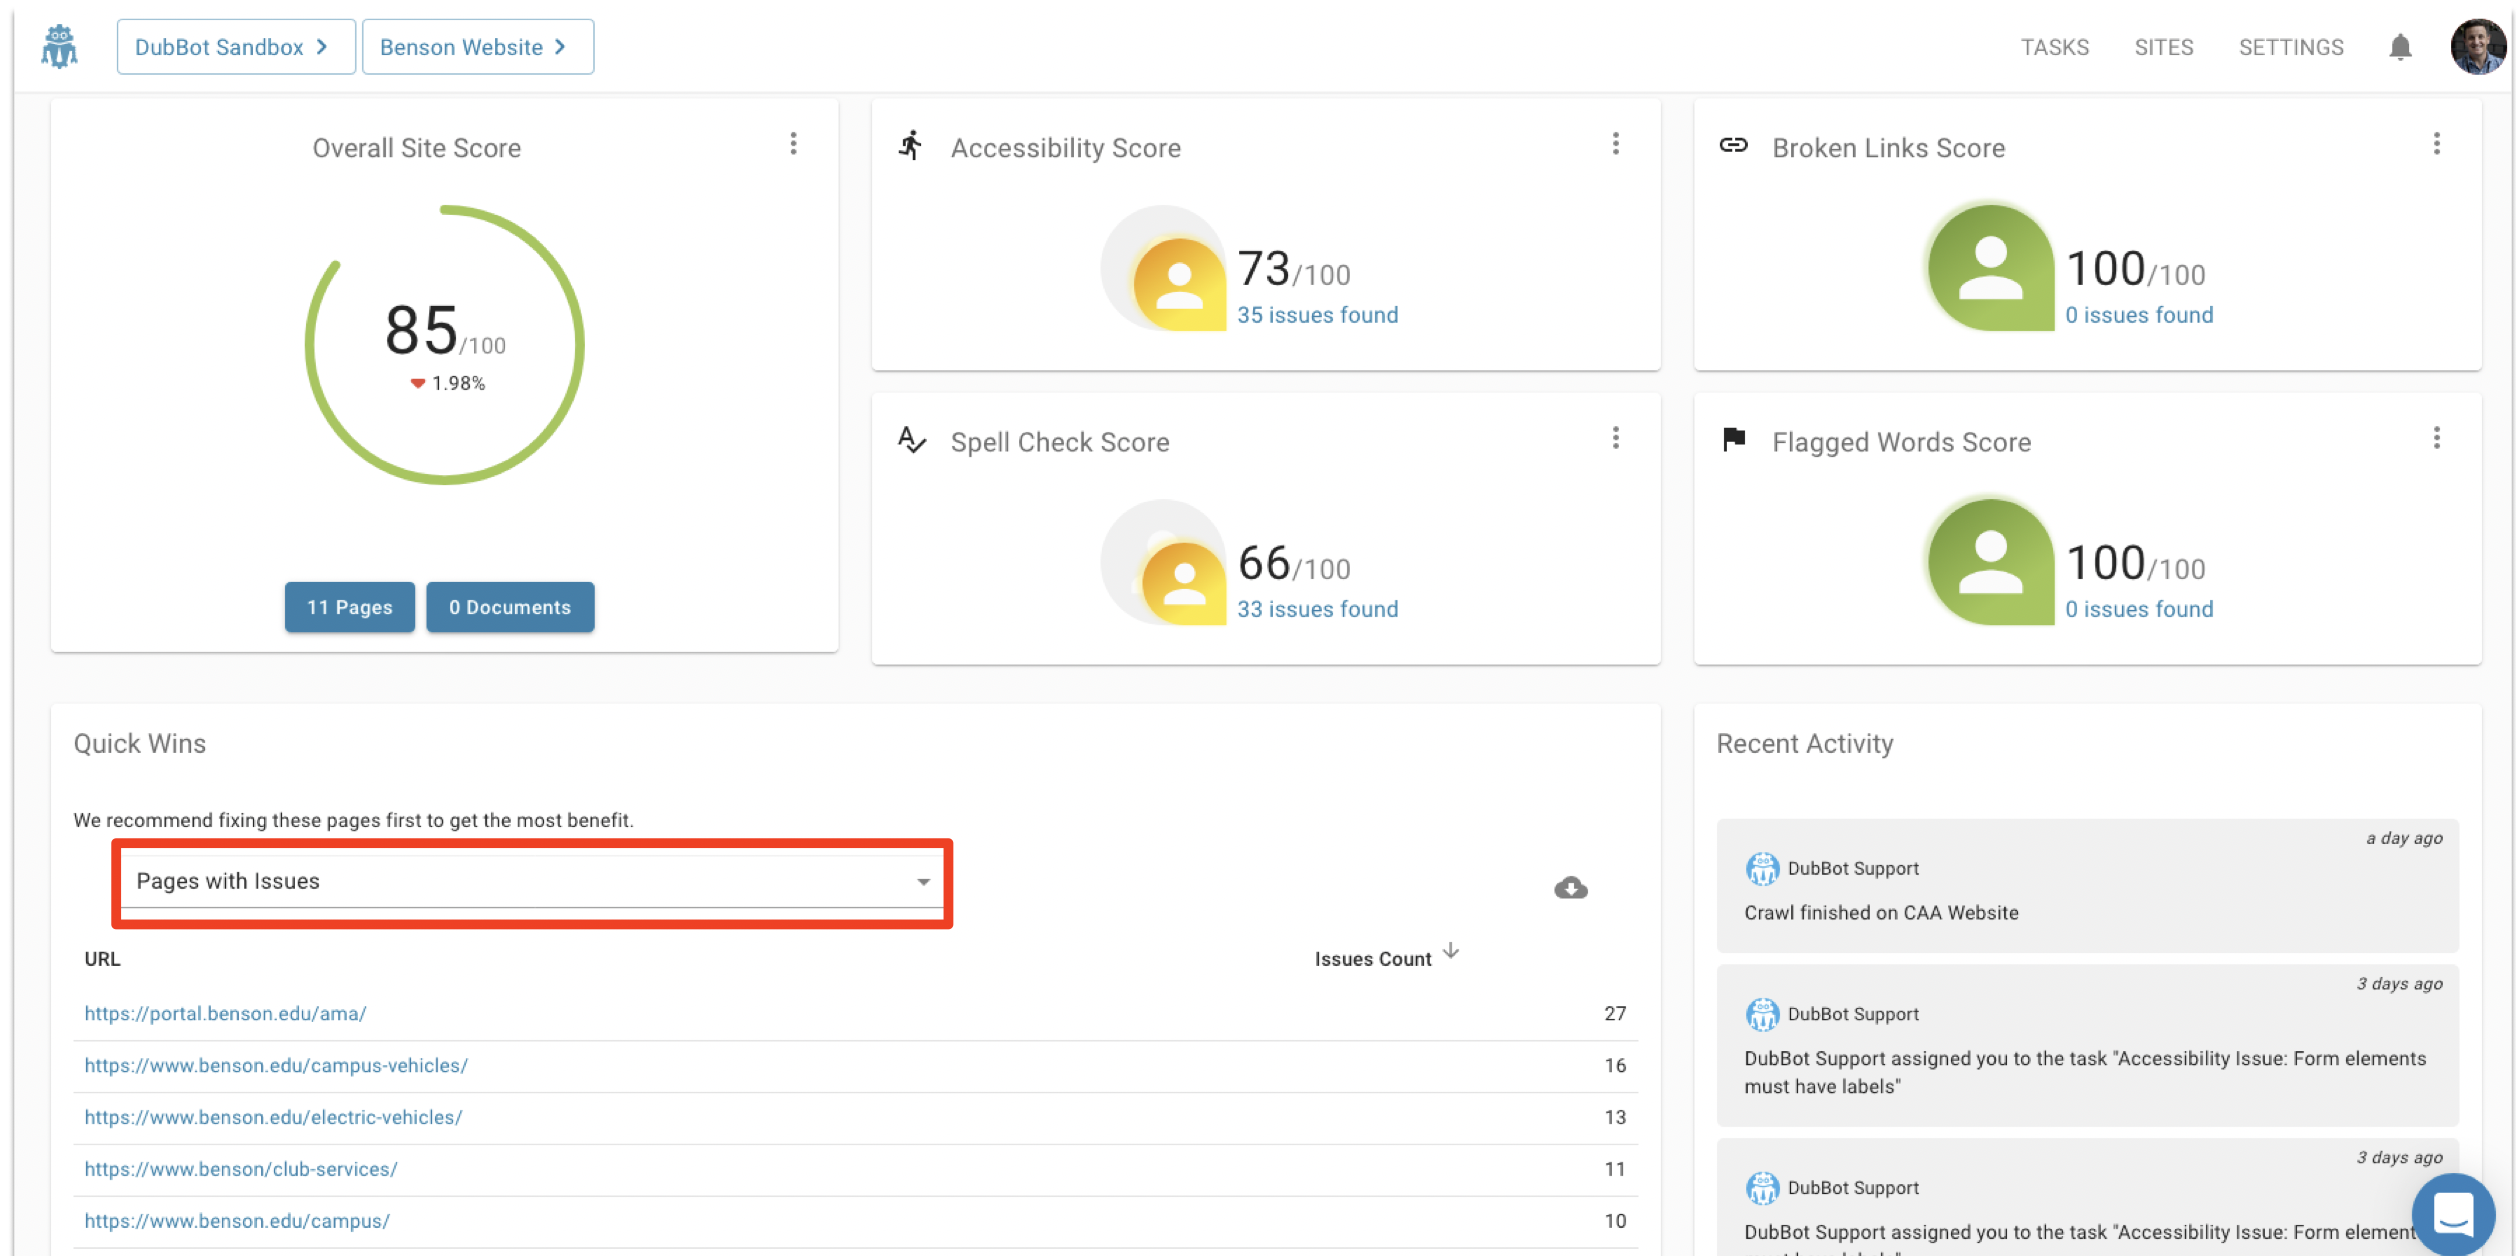 In Site Dashboard view, inside of the Quick Wins panel, the